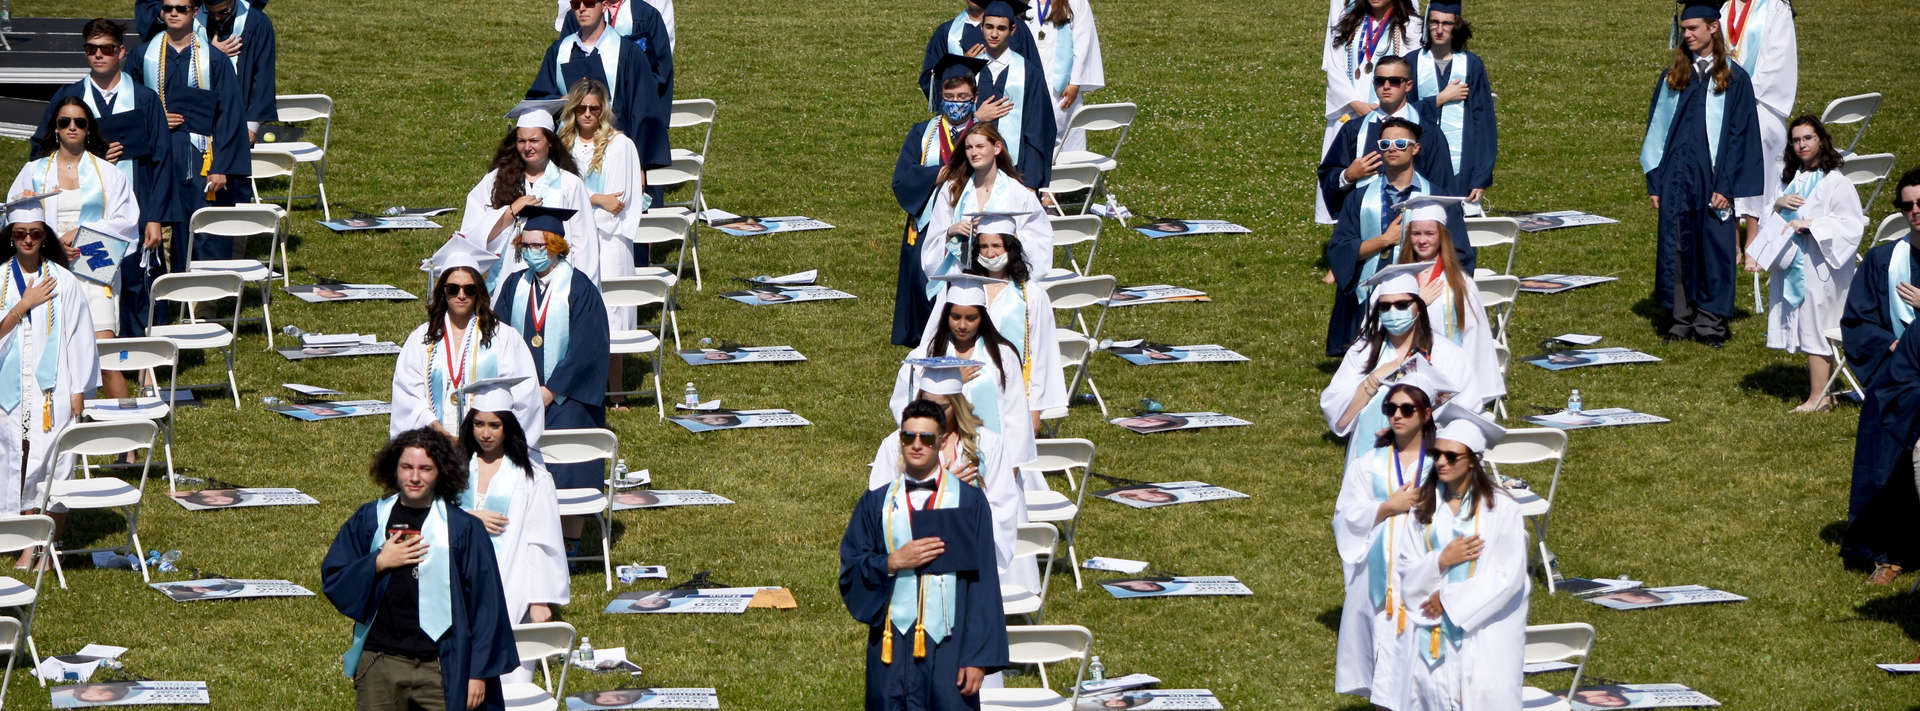 Graduates stand on field saying pledge of allegiance